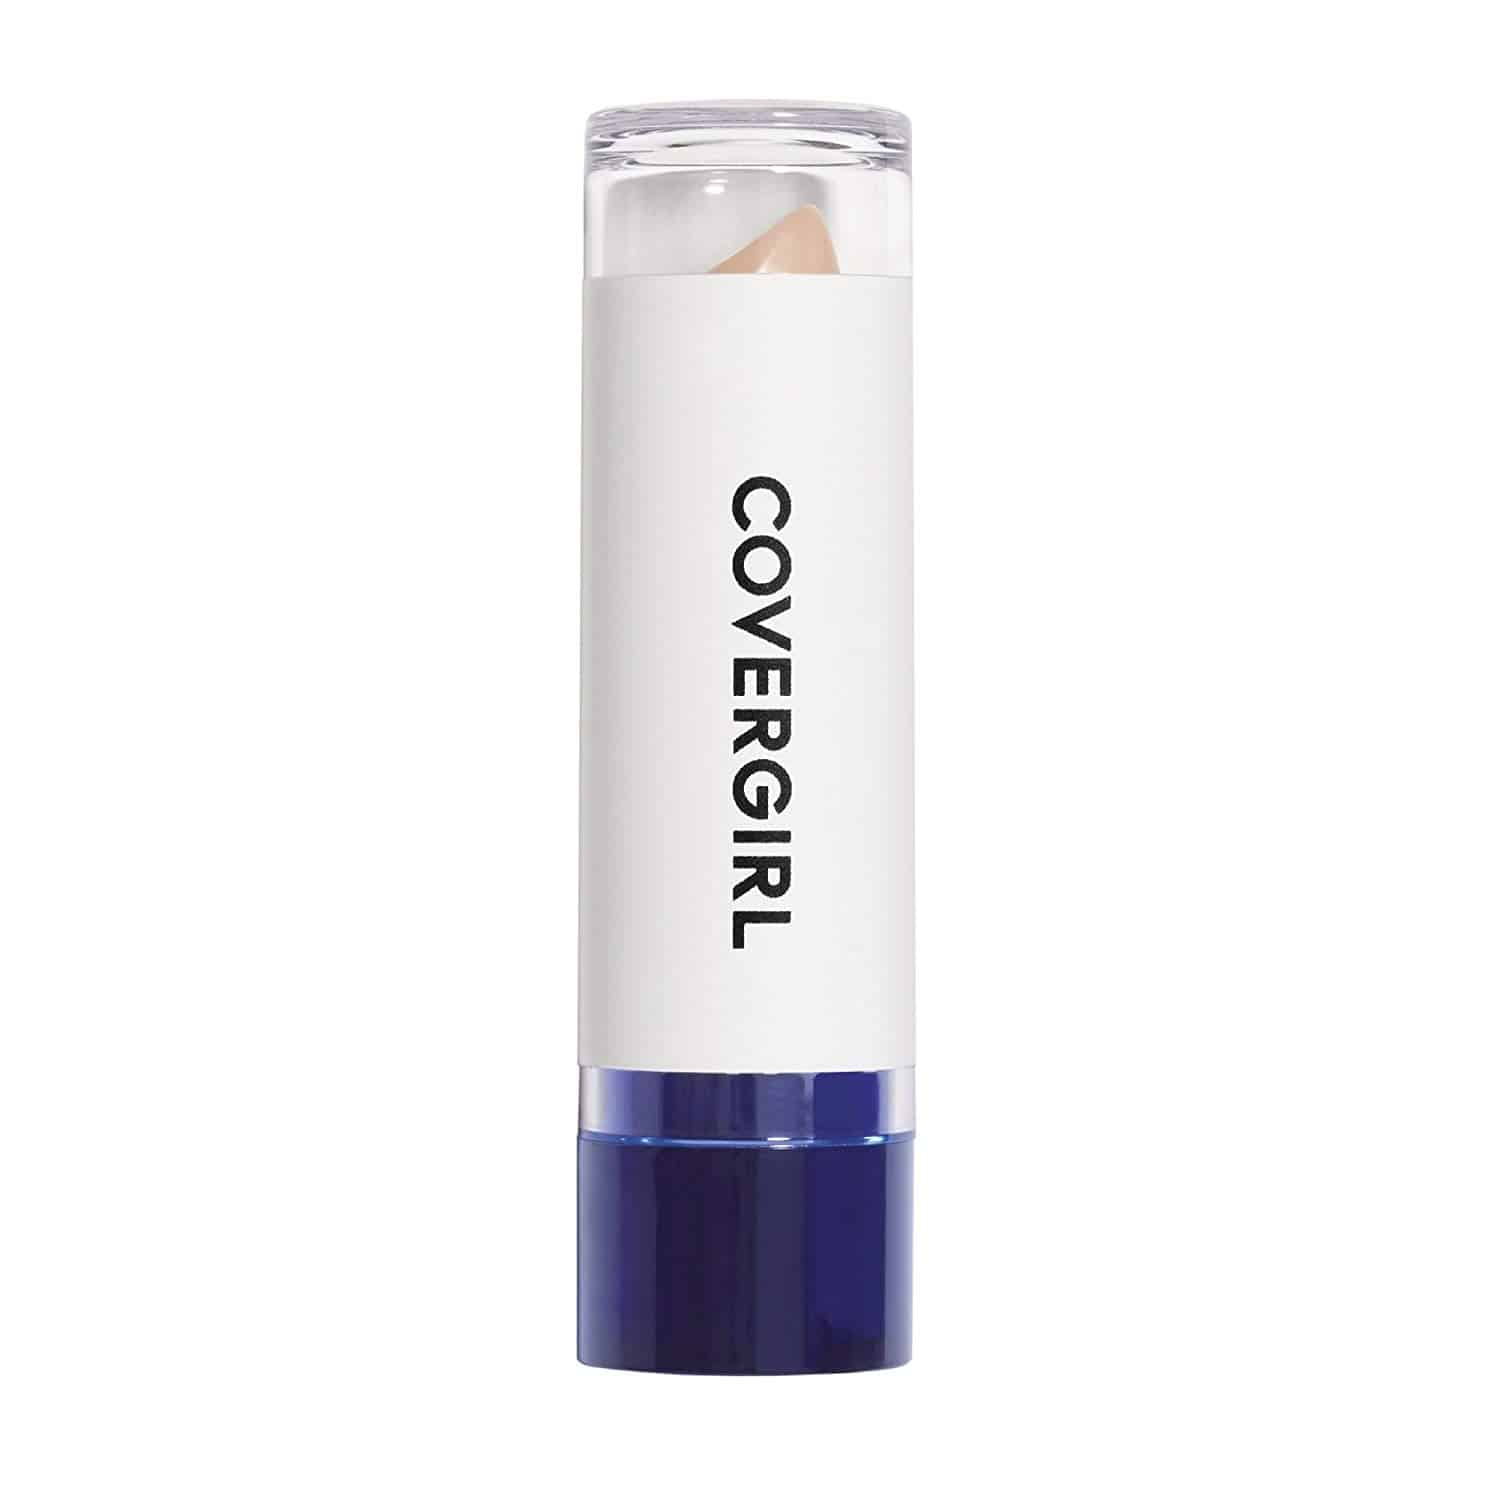 COVERGIRL Smoothers Moisturizing Concealer